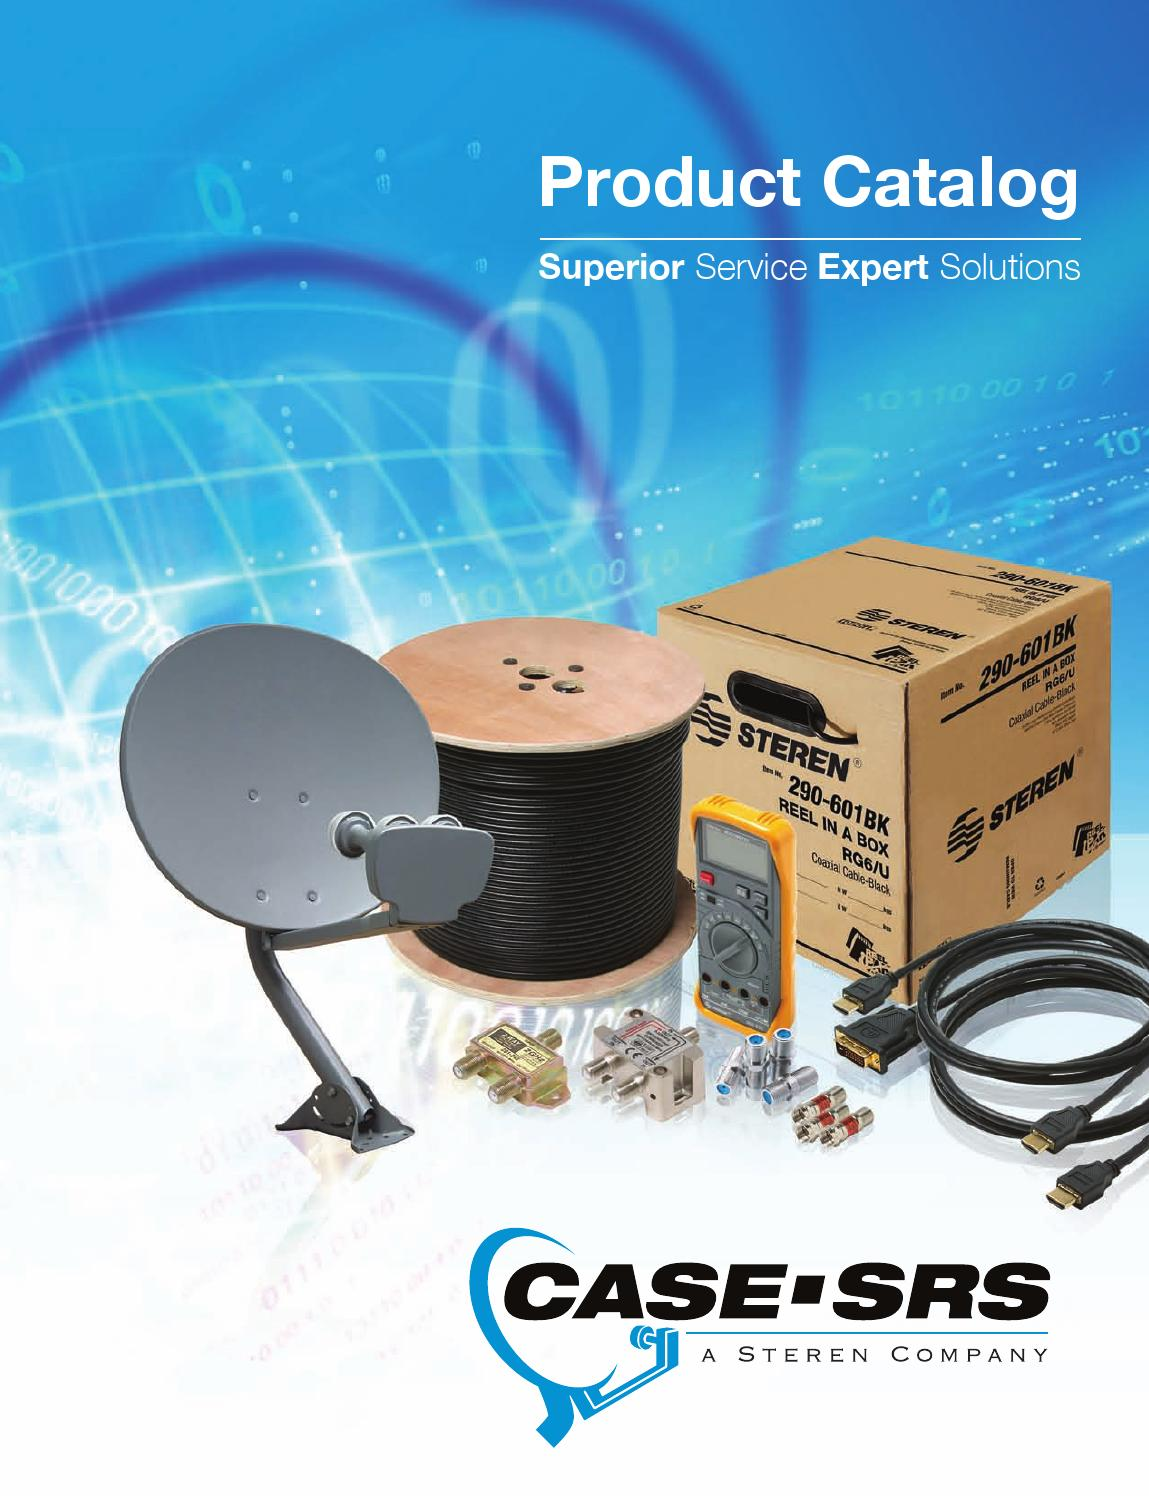 Case Av 2009 Product Catalog Complete By Issuu Twoway Multiswitch Splitter